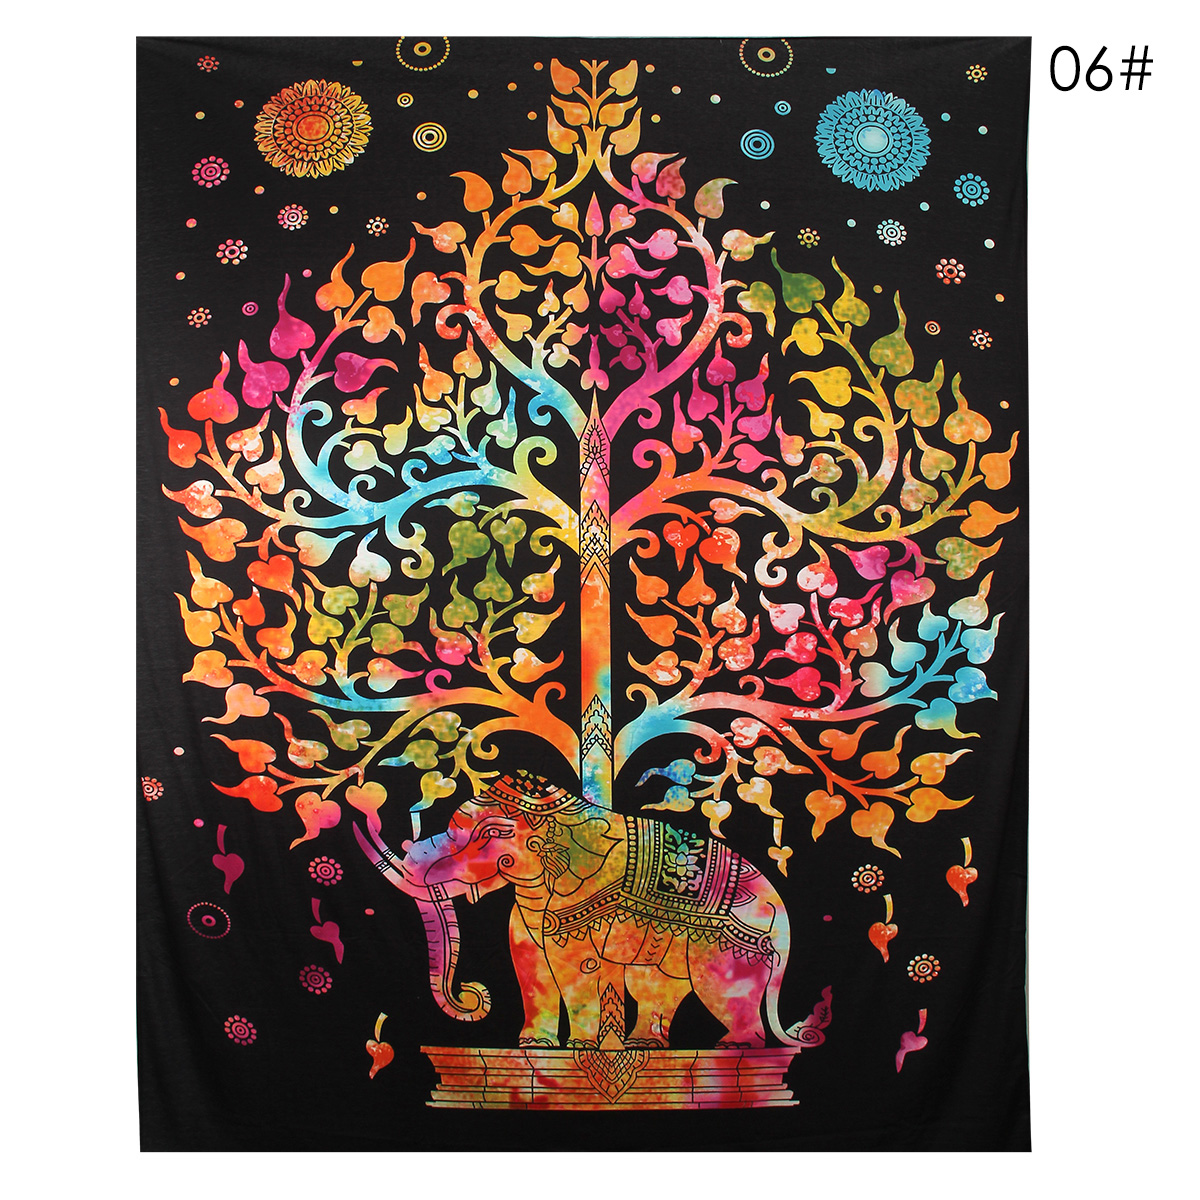 Elephant Mandala Tapestry Throw Towel Hippie Tapestry Floral Printed Home Decor Wall Tapestries Bedspread 210*150CM 25